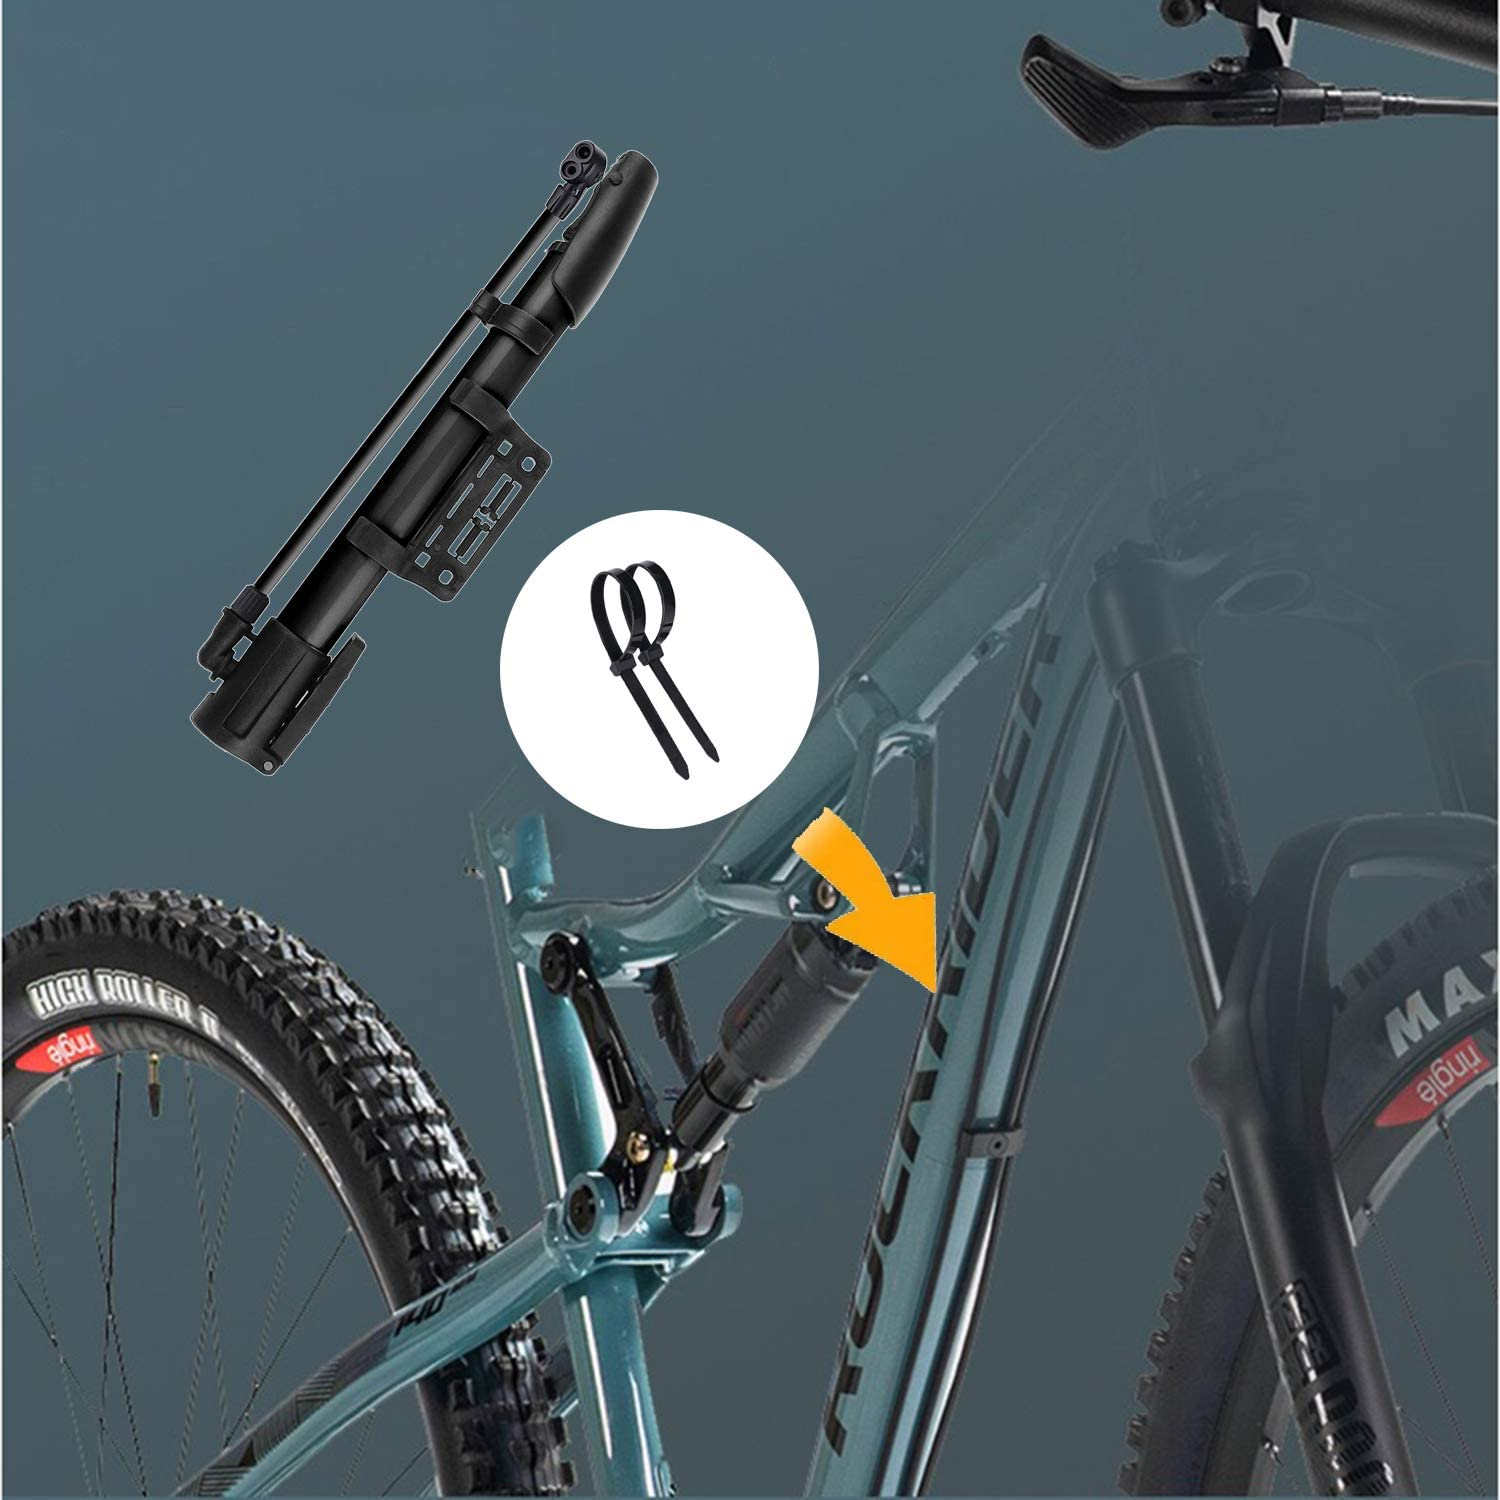 VIMILOLO Bike Pump,Bicycle Pump Portable Mini Ball Pump Aluminum Alloy Bike Tire Floor Pumps Presta and Schrader for All Bike,/&Basketball Football Rugby Exercise Sports Ball Swim Inflatables